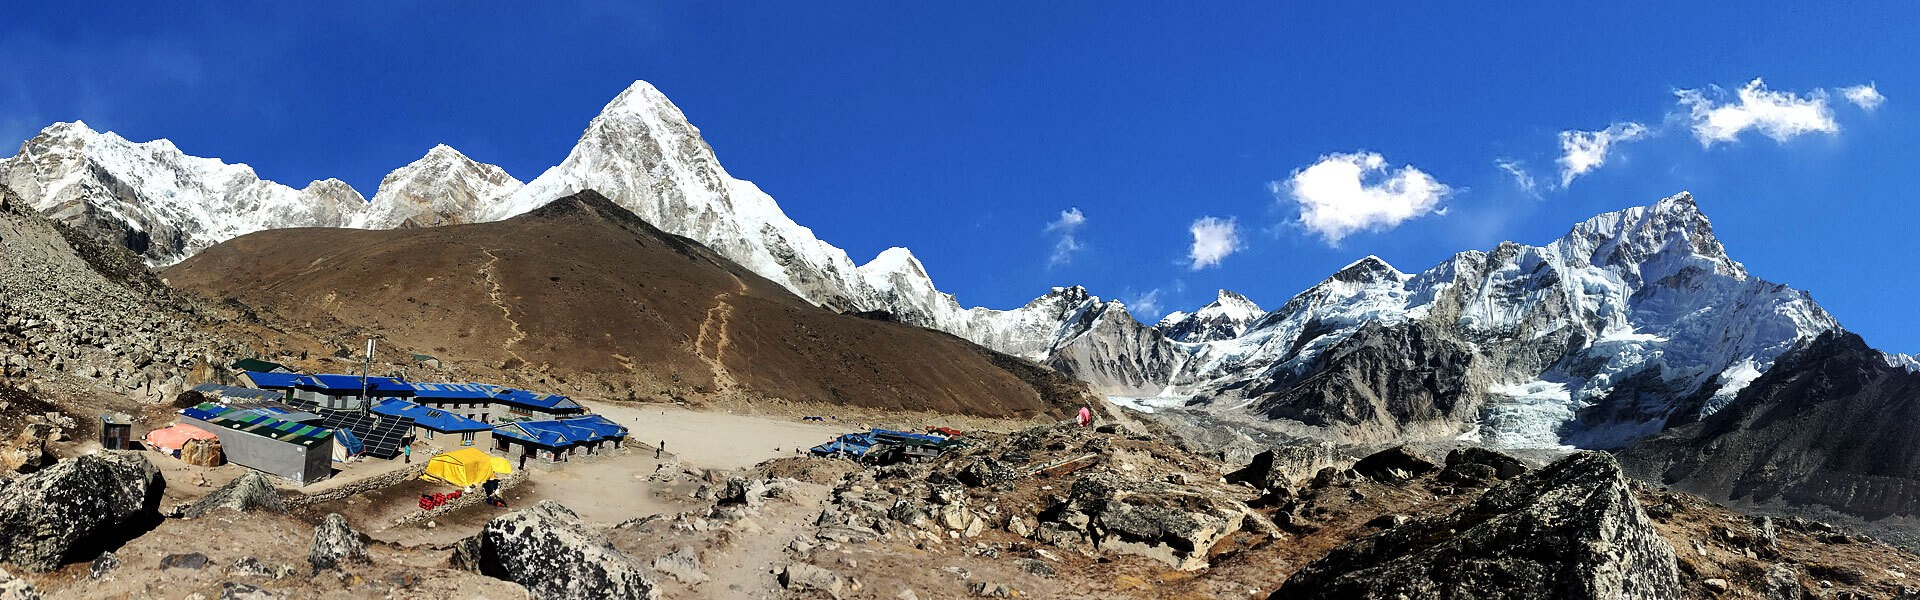 Everest region trek, Everest Base camp, EBC, Khumbu trek